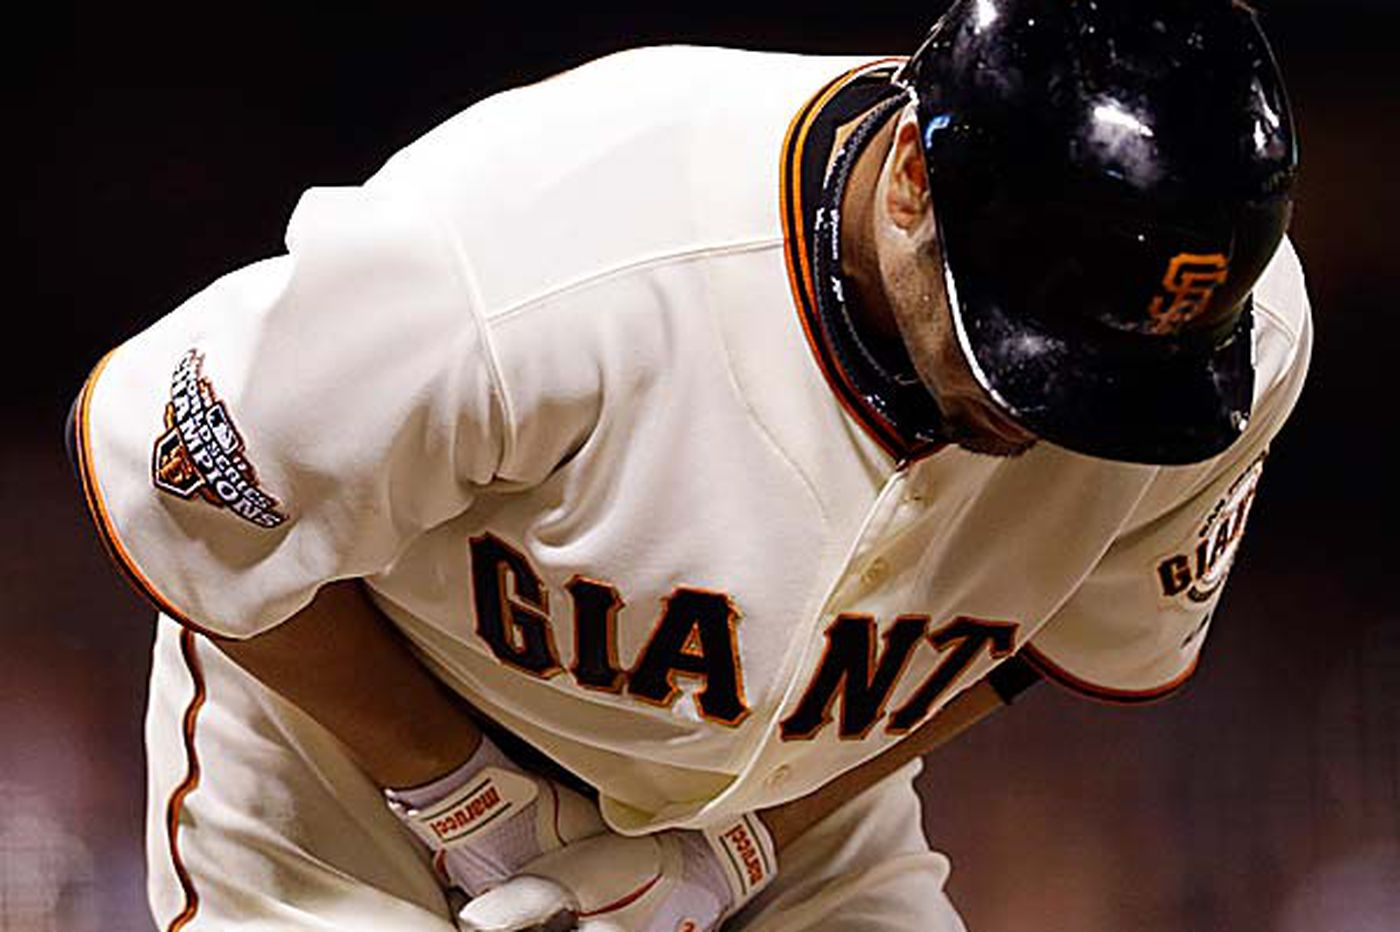 Touch 'Em All: Giants' Vogelsong has surgery on broken hand